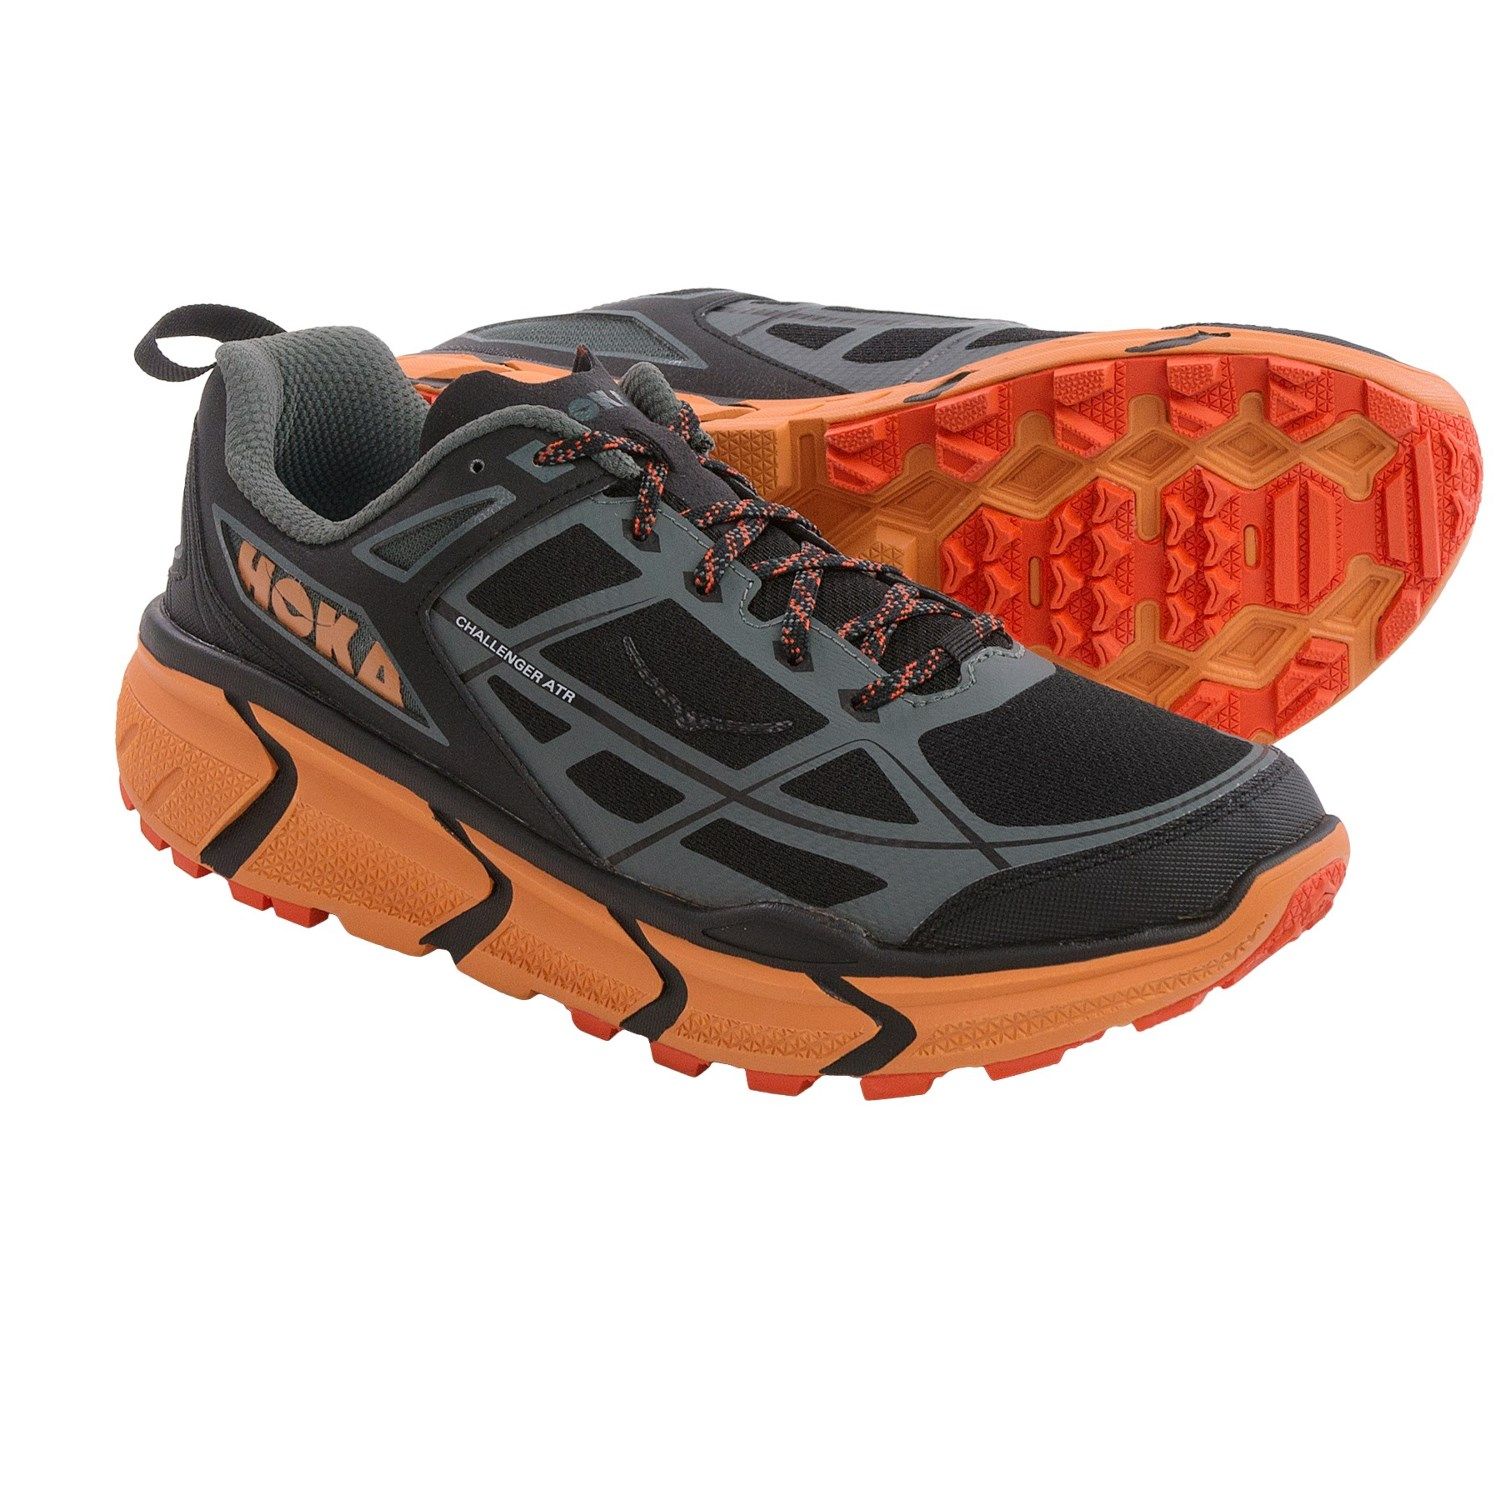 Hoka One One Challenger Atr Trail Running Shoes For Men